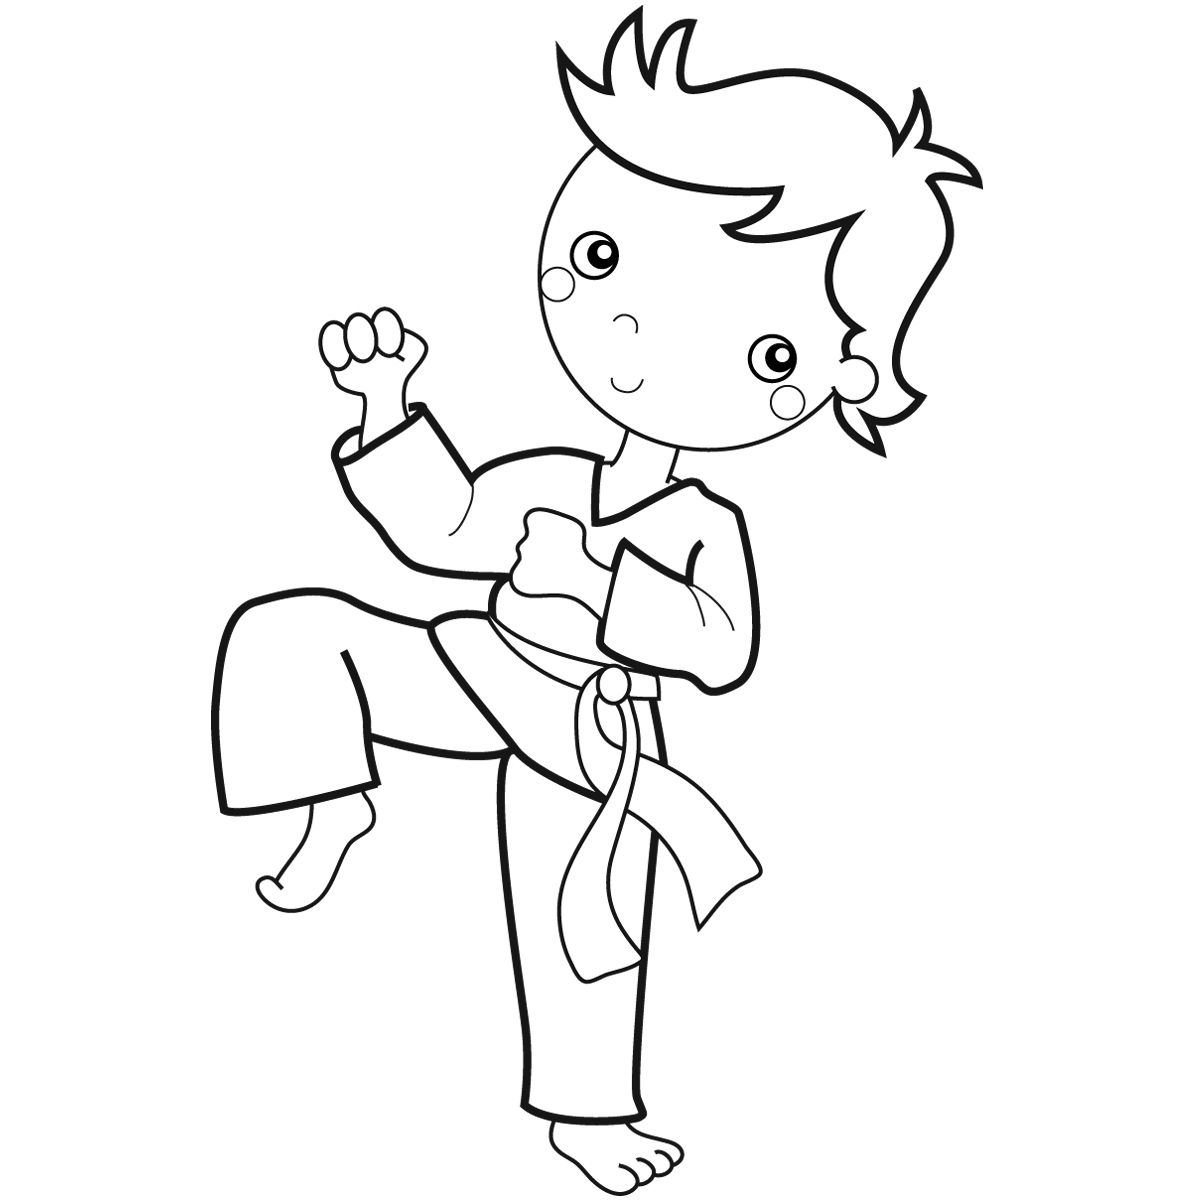 Karate Kid Coloring Pages Coloring Pages For Boys Coloring Pages Sports Coloring Pages